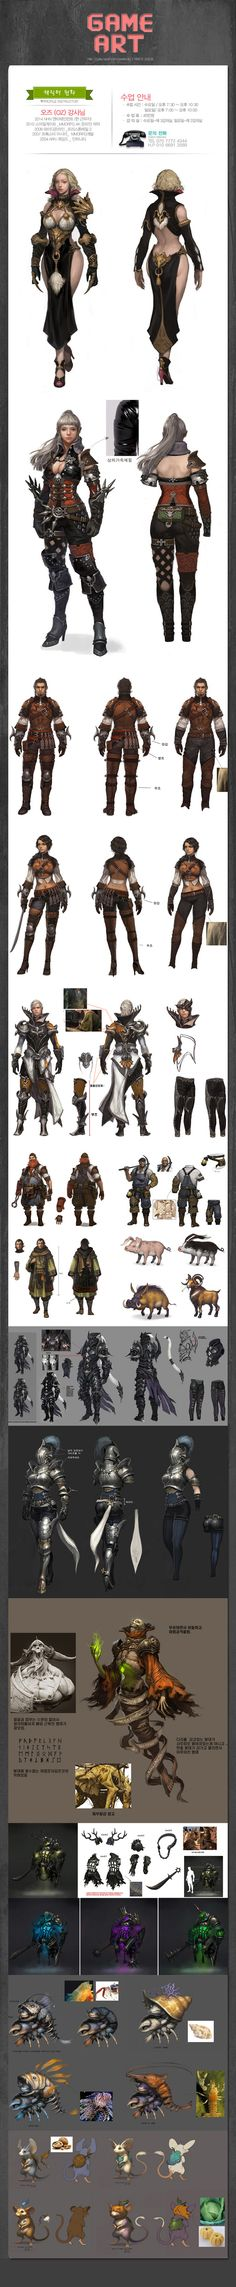 Clothing Armor Game Design armour armor clothes clothing fashion player character npc | Create your own roleplaying game material w/ RPG Bard: www.rpgbard.com | Writing inspiration for Dungeons and Dragons DND D&D Pathfinder PFRPG Warhammer 40k Star Wars Shadowrun Call of Cthulhu Lord of the Rings LoTR + d20 fantasy science fiction scifi horror design | Not Trusty Sword art: click artwork for source